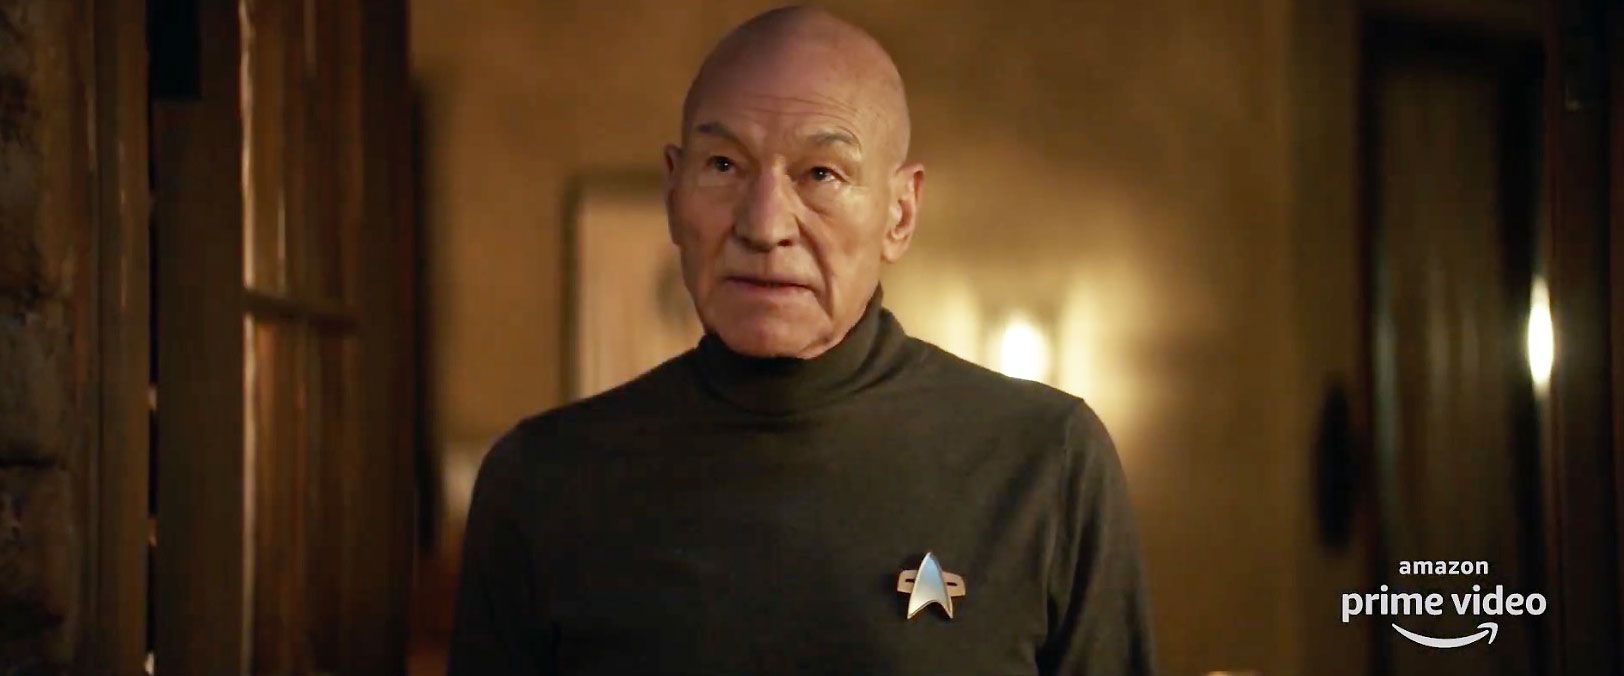 Star Trek's Patrick Stewart originally didn't want to return to franchise for Picard series